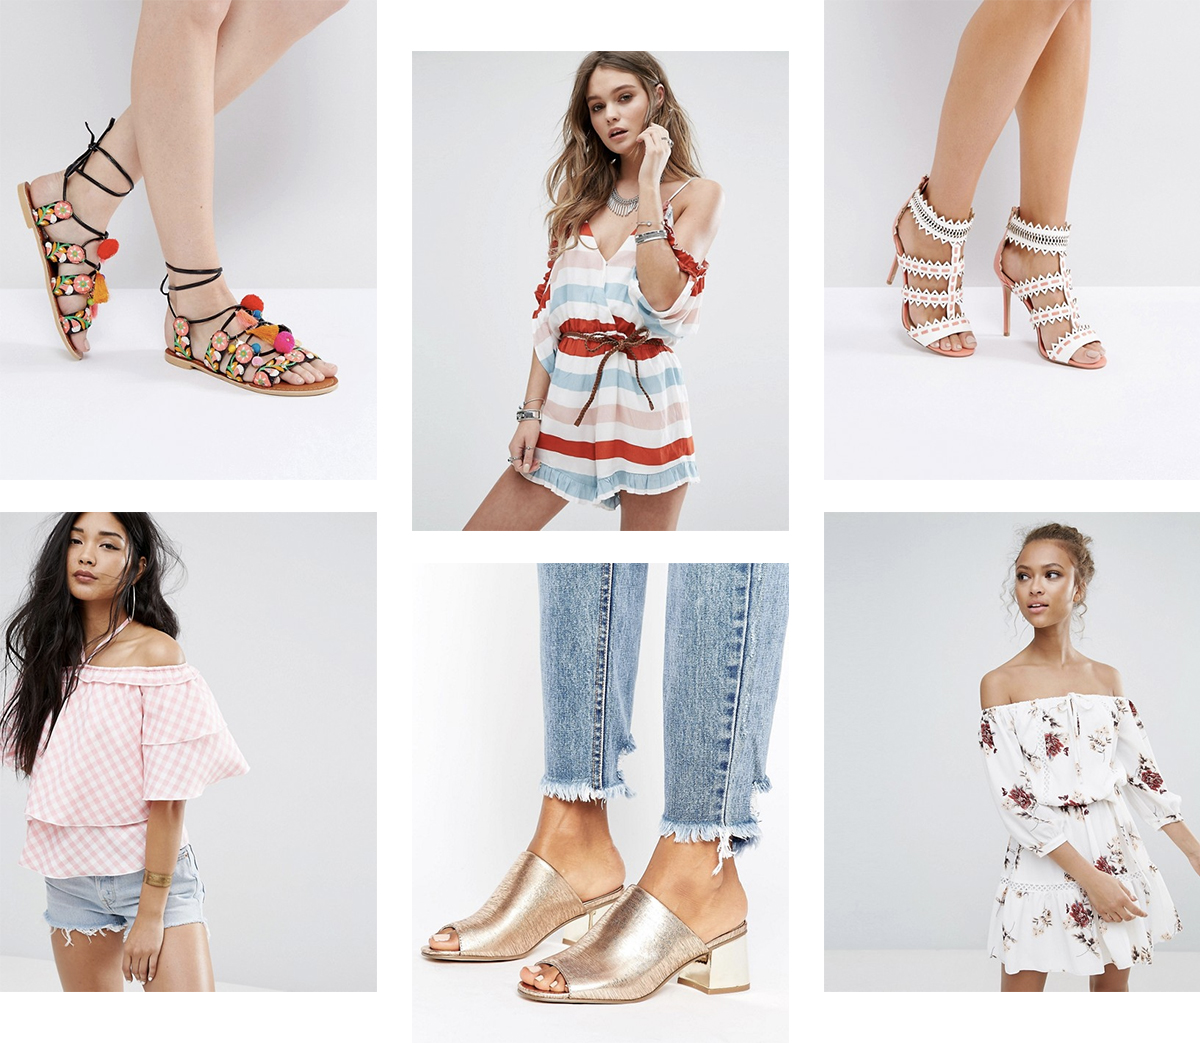 cruelty-free-chic-6-Picks-from-the-ASOS-Summer-Sale